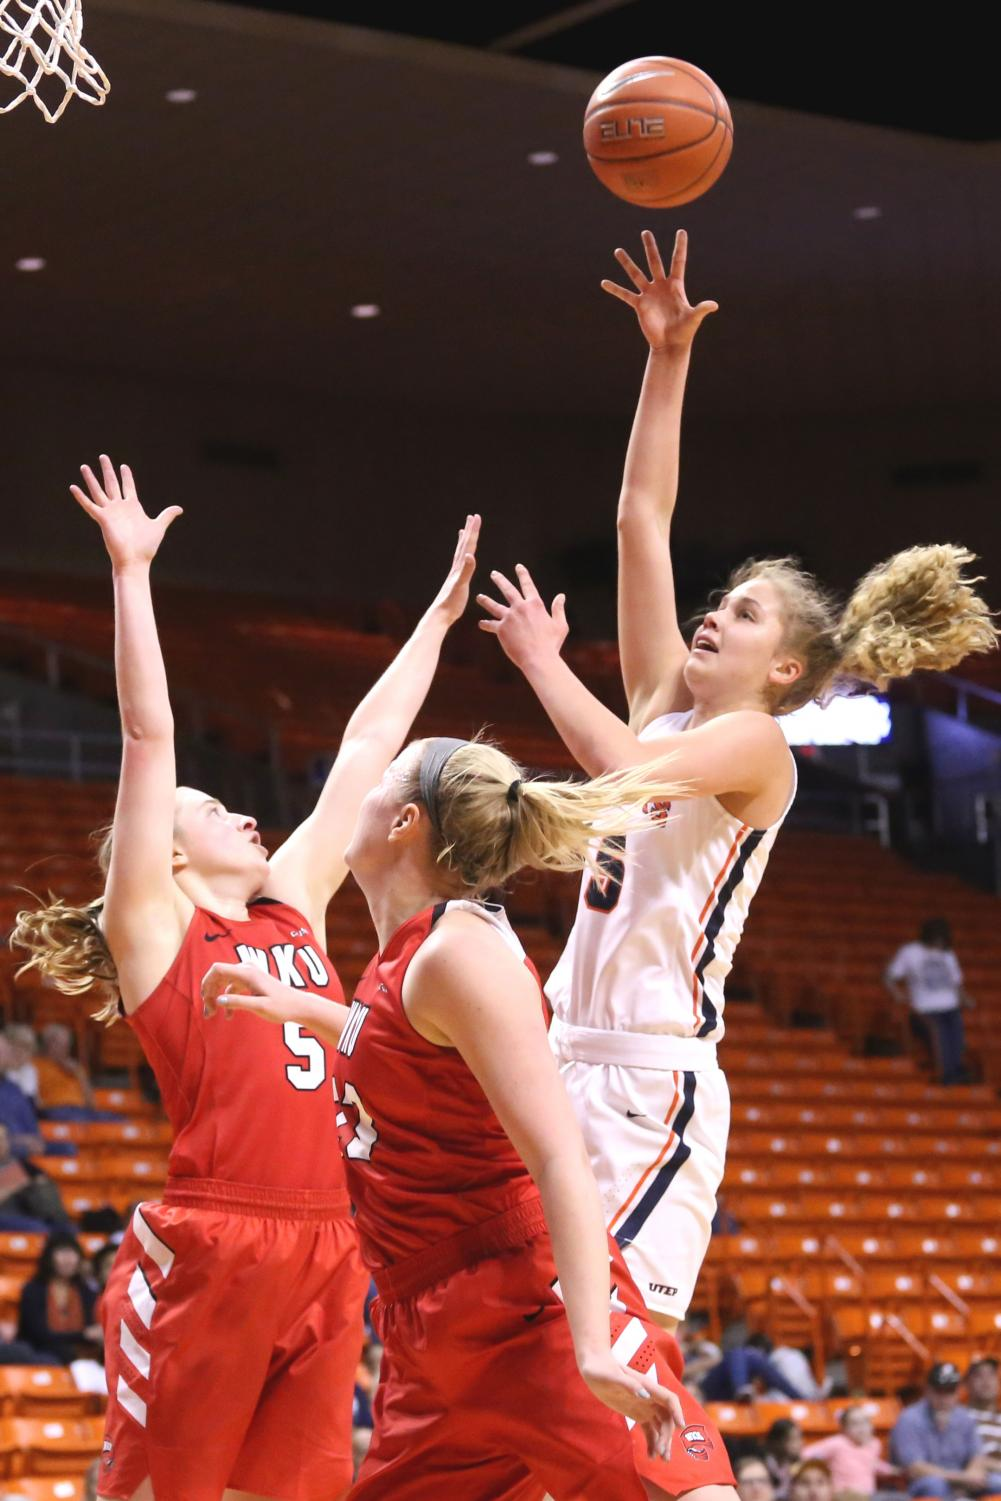 Sophomore+forward+Zuzanna+Puc+drives+to+the+lane+for+two+on+Saturday%2C+March+3+at+the+Don+Haskins+Center.